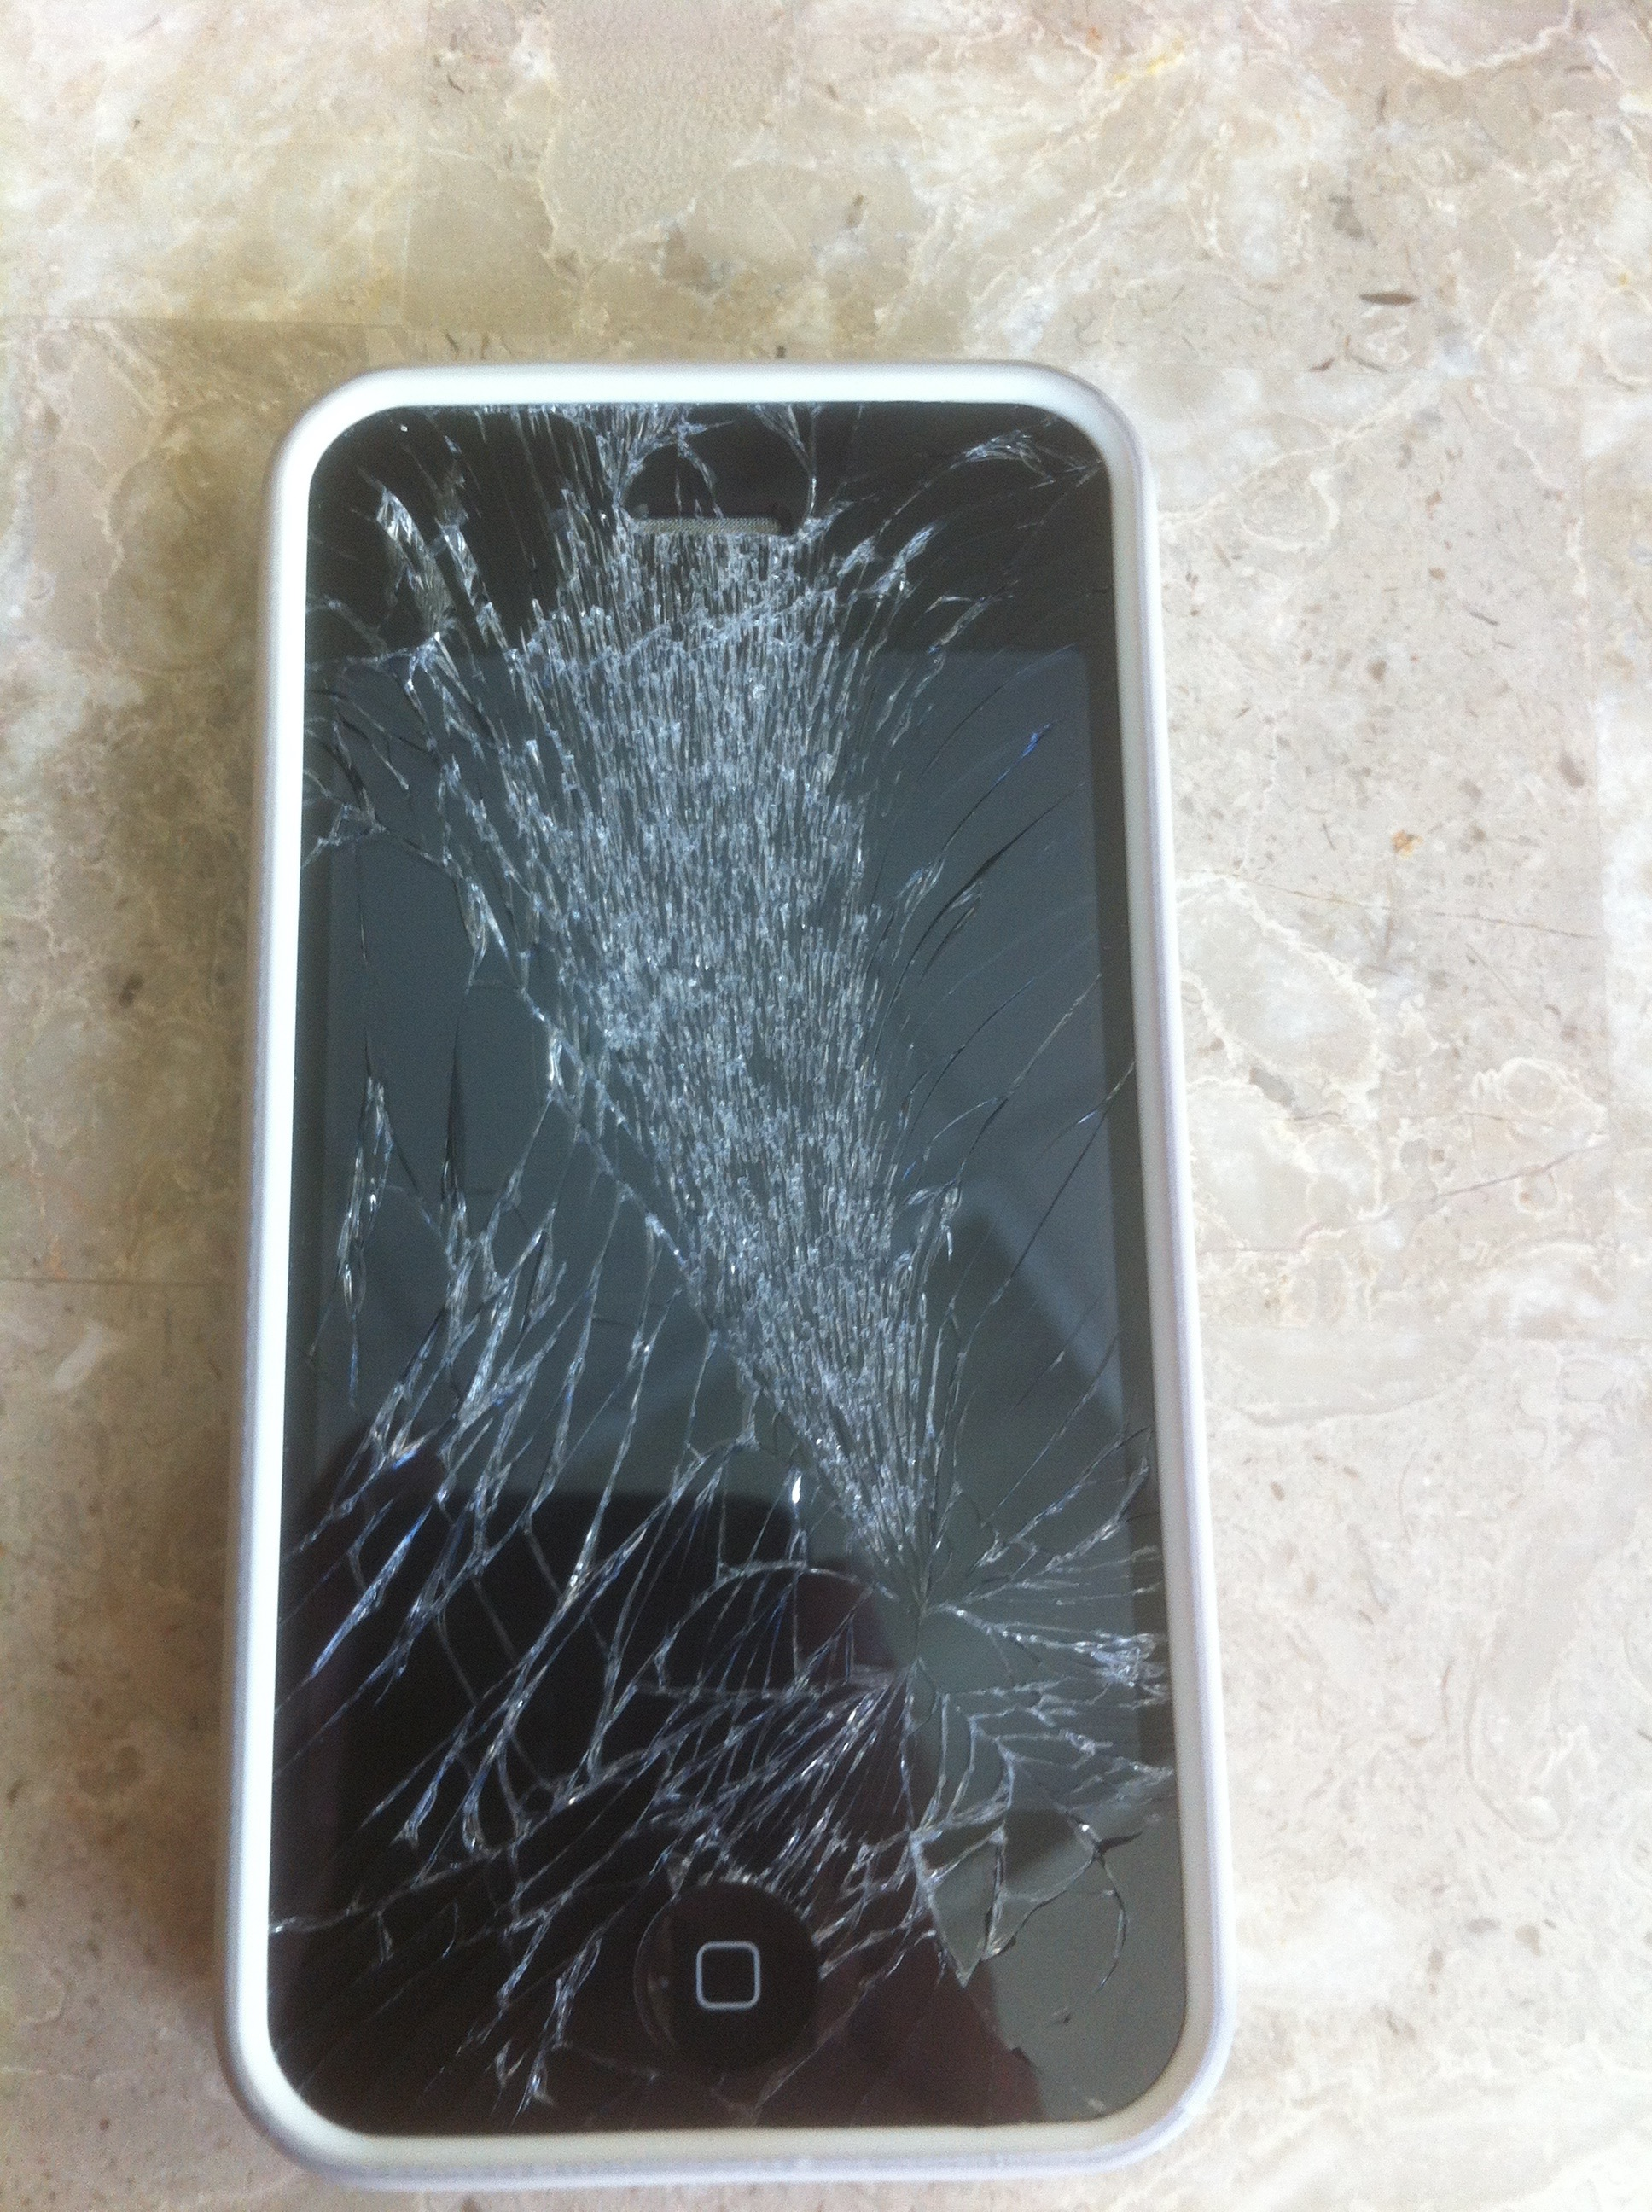 Help! my iphone 4 screen has cracked!